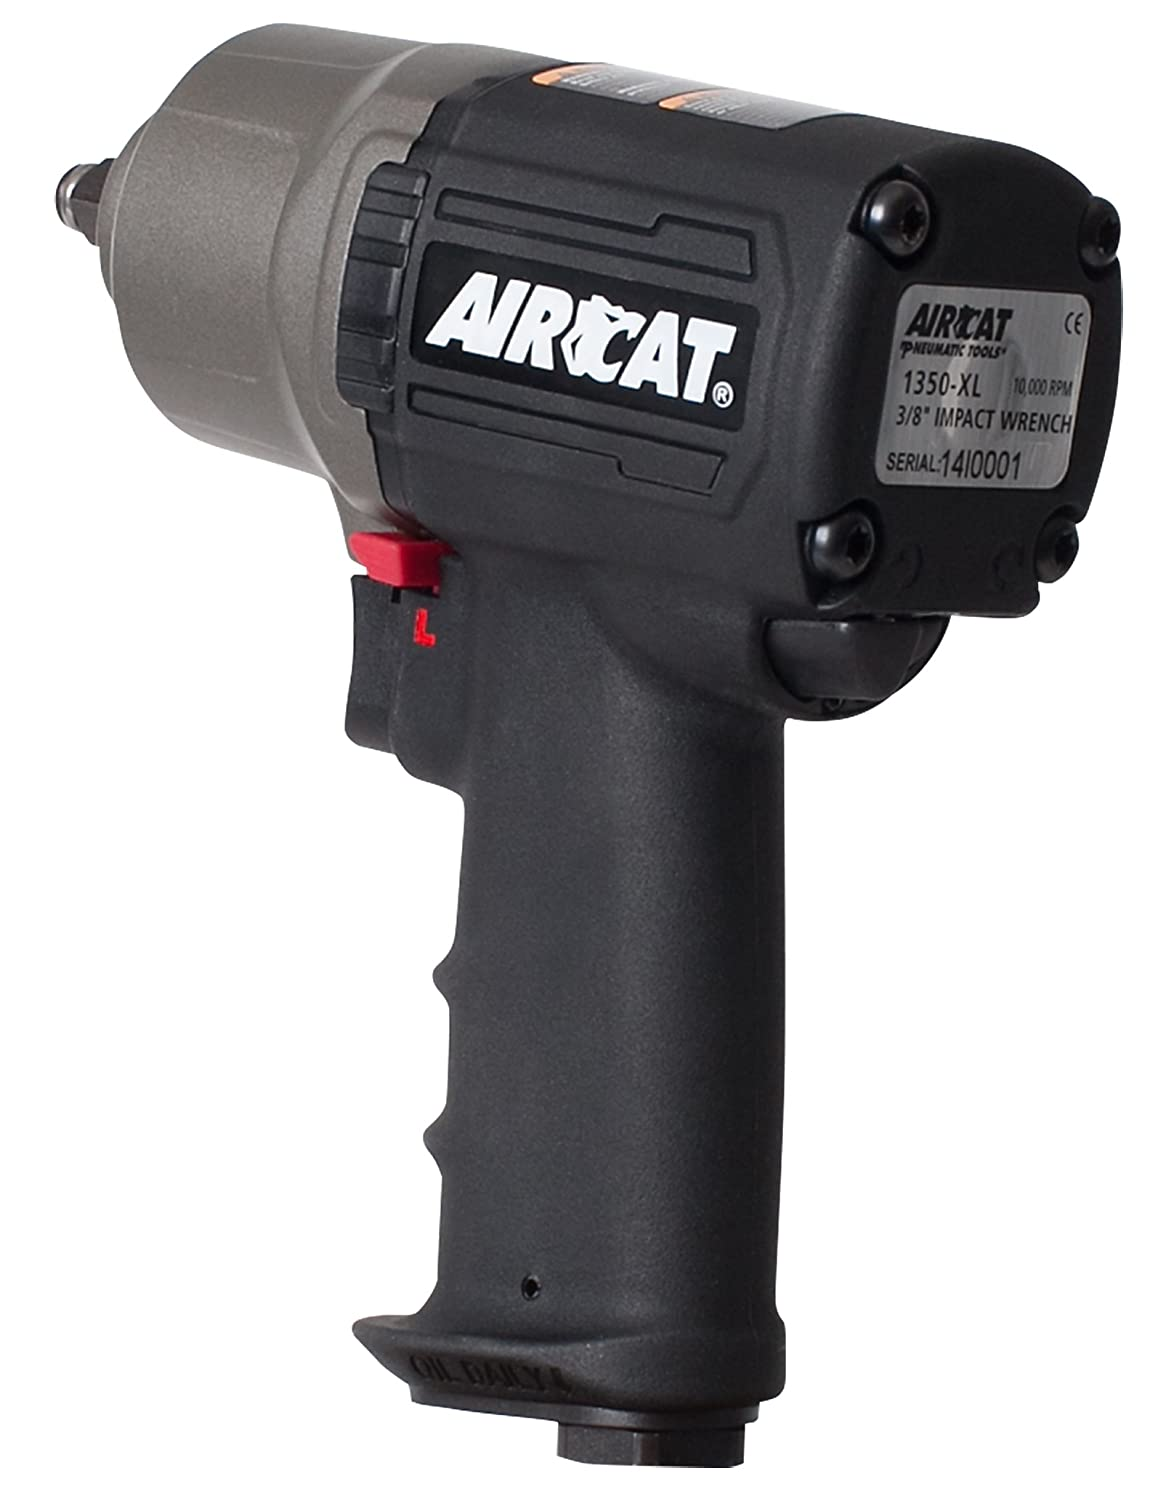 AIRCAT 1350-XL Composite High-Low Torque Impact Wrench, 3 8-Inch, Black Titanium